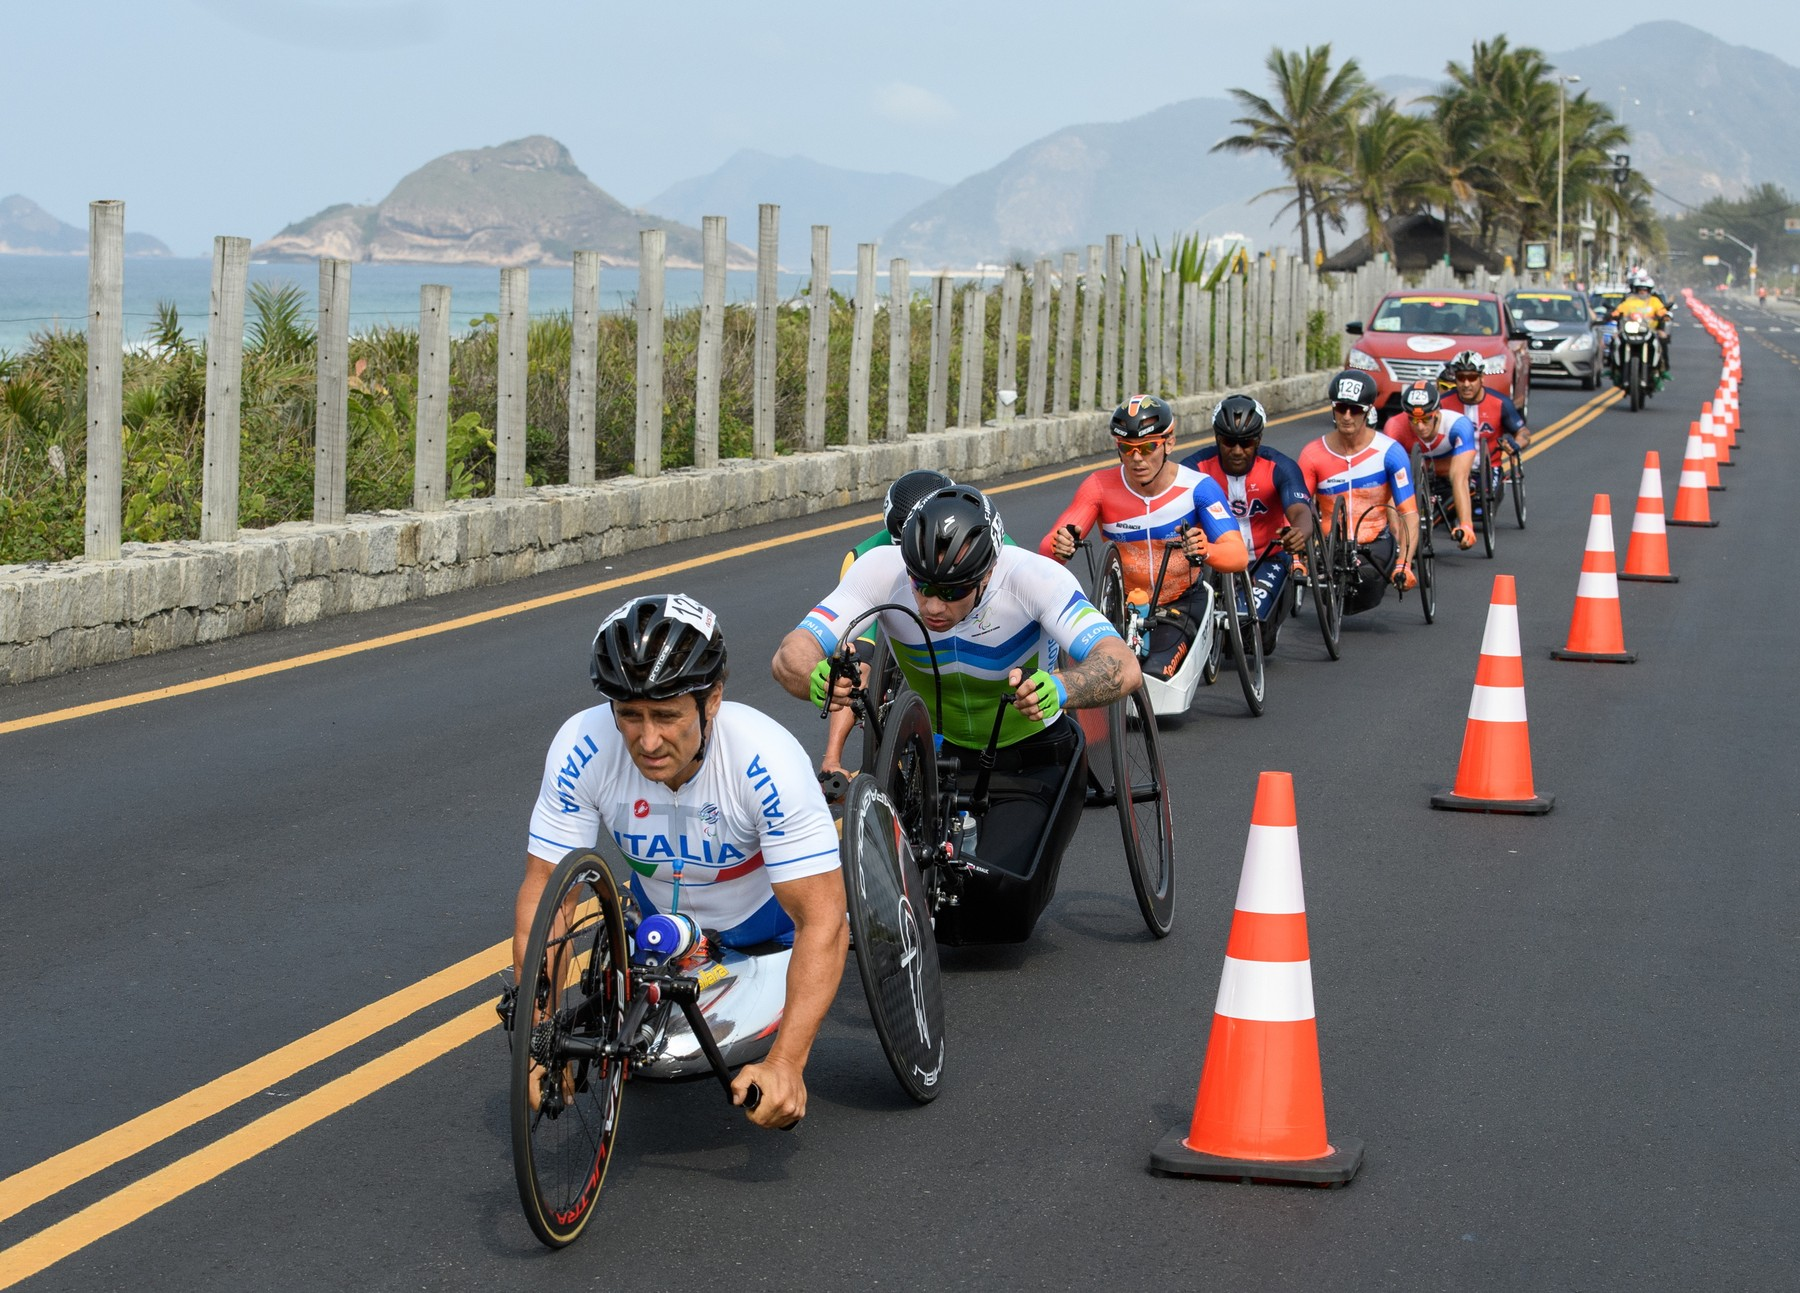 Sep 15, 2016 - Rio de Janeiro, Brazil - Alessandro Zanardi ITA (left) competes in the Men's Cycling Road Race H5 at Pontal. The Paralympic Games, Rio de Janeiro, Brazil, Thursday 15th September 2016. ., Image: 301670311, License: Rights-managed, Restrictions: , Model Release: no, Credit line: Profimedia, Zuma Press - News